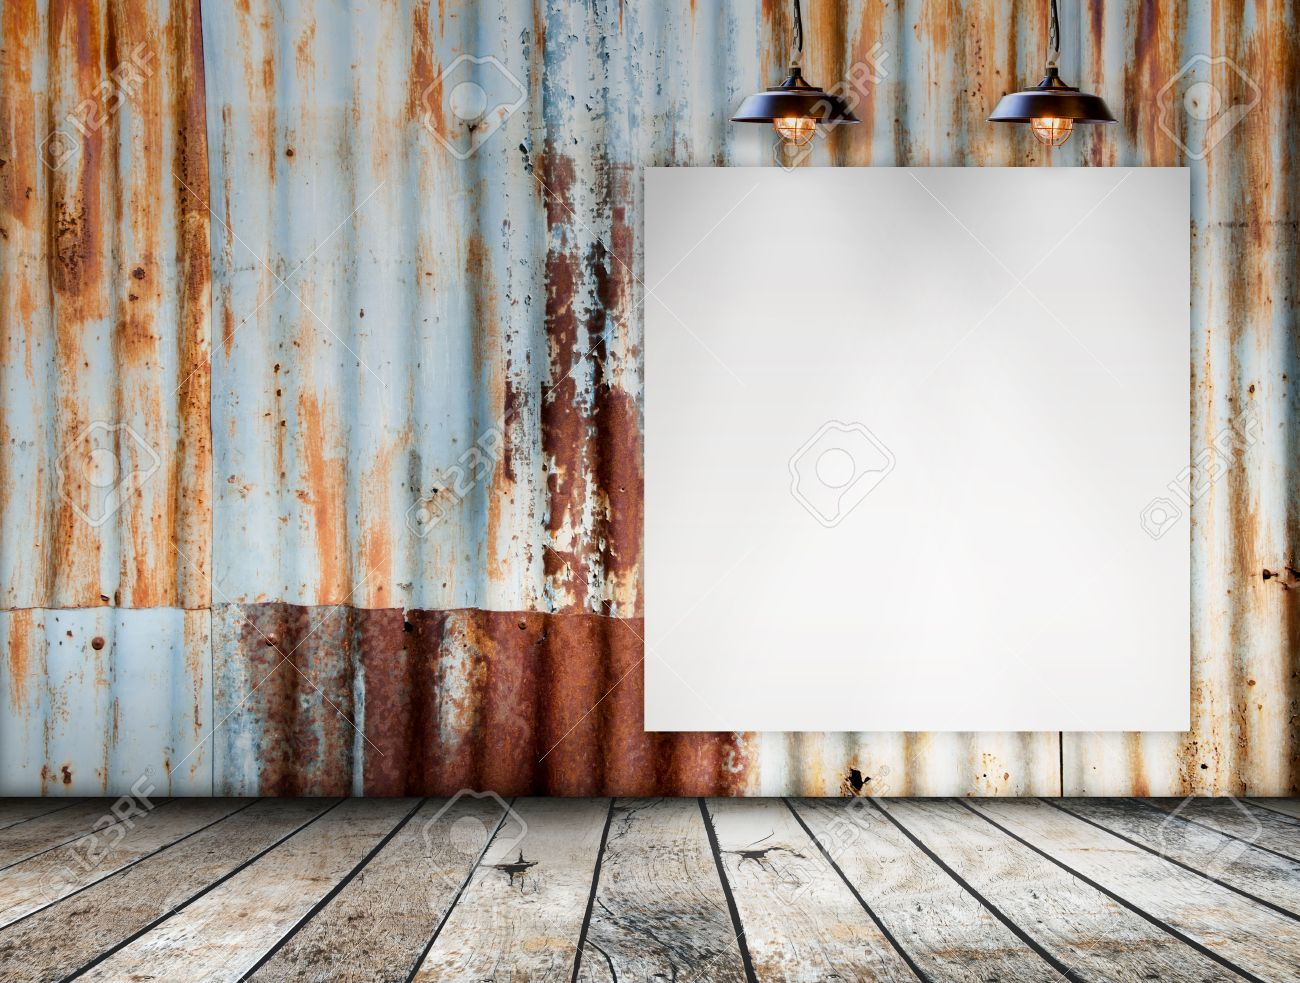 Blank Frame On Rusted Galvanized Iron Plate With Wood Floor Stock ...